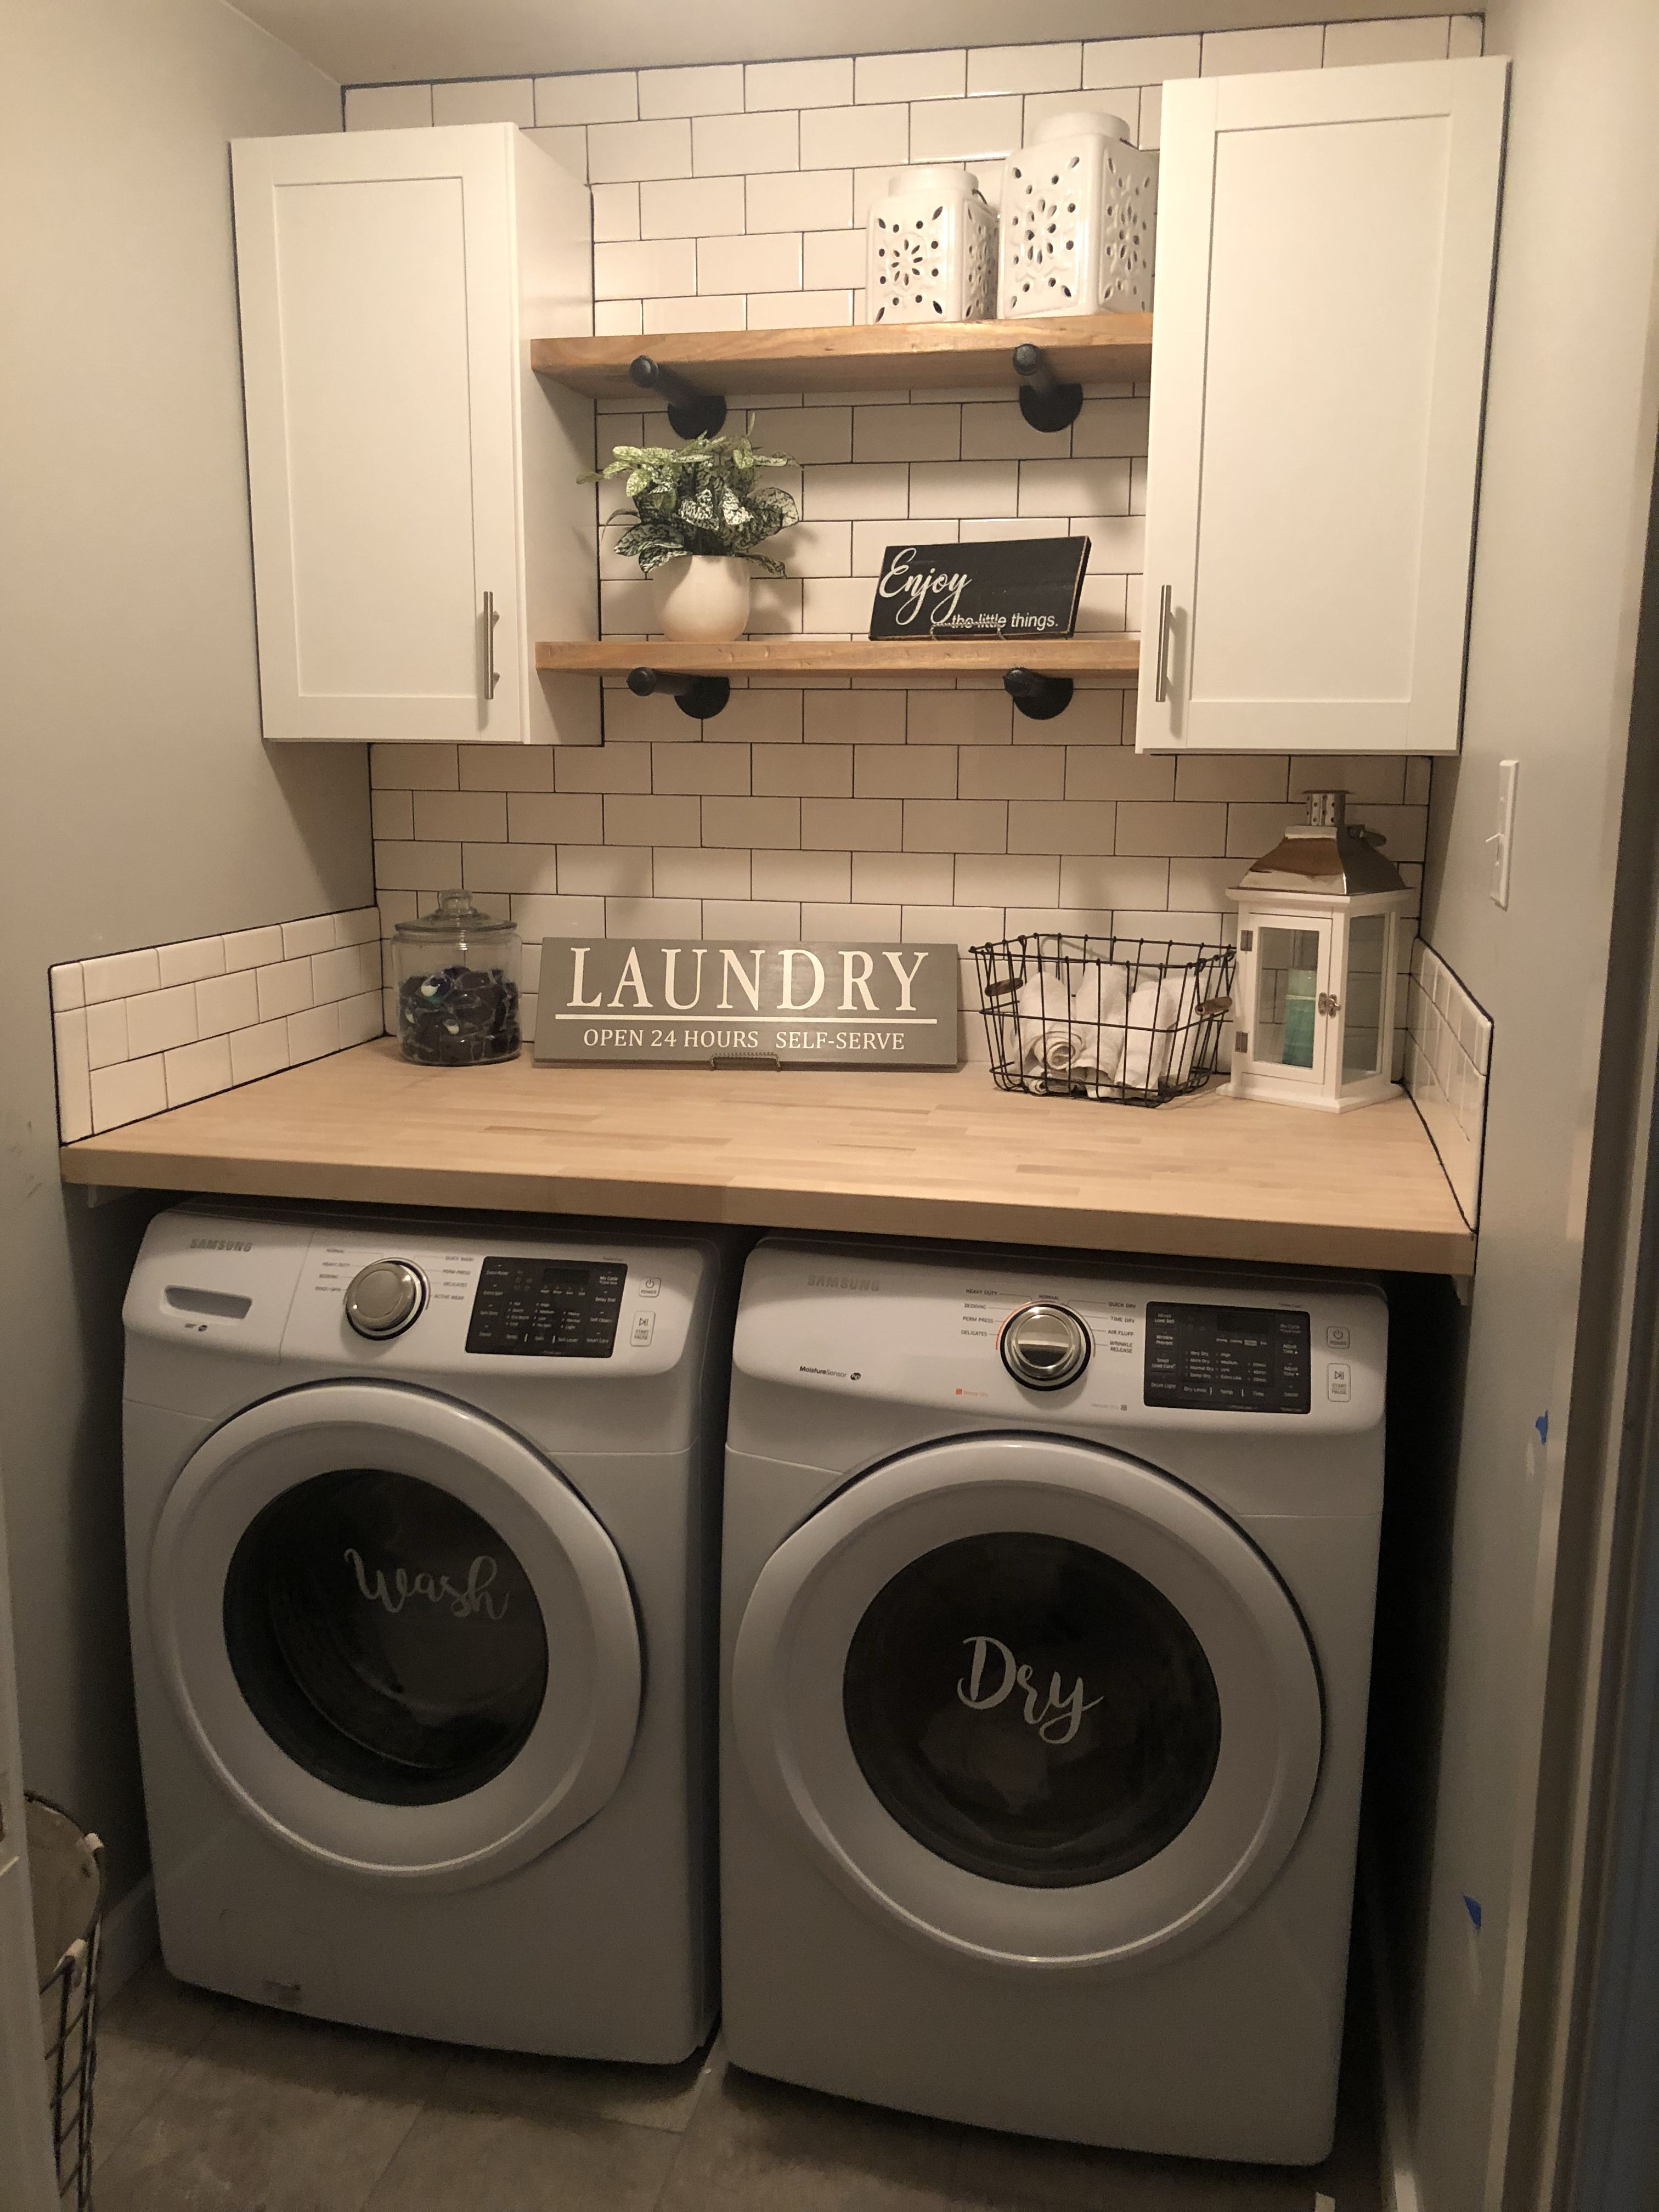 Small laundry room images